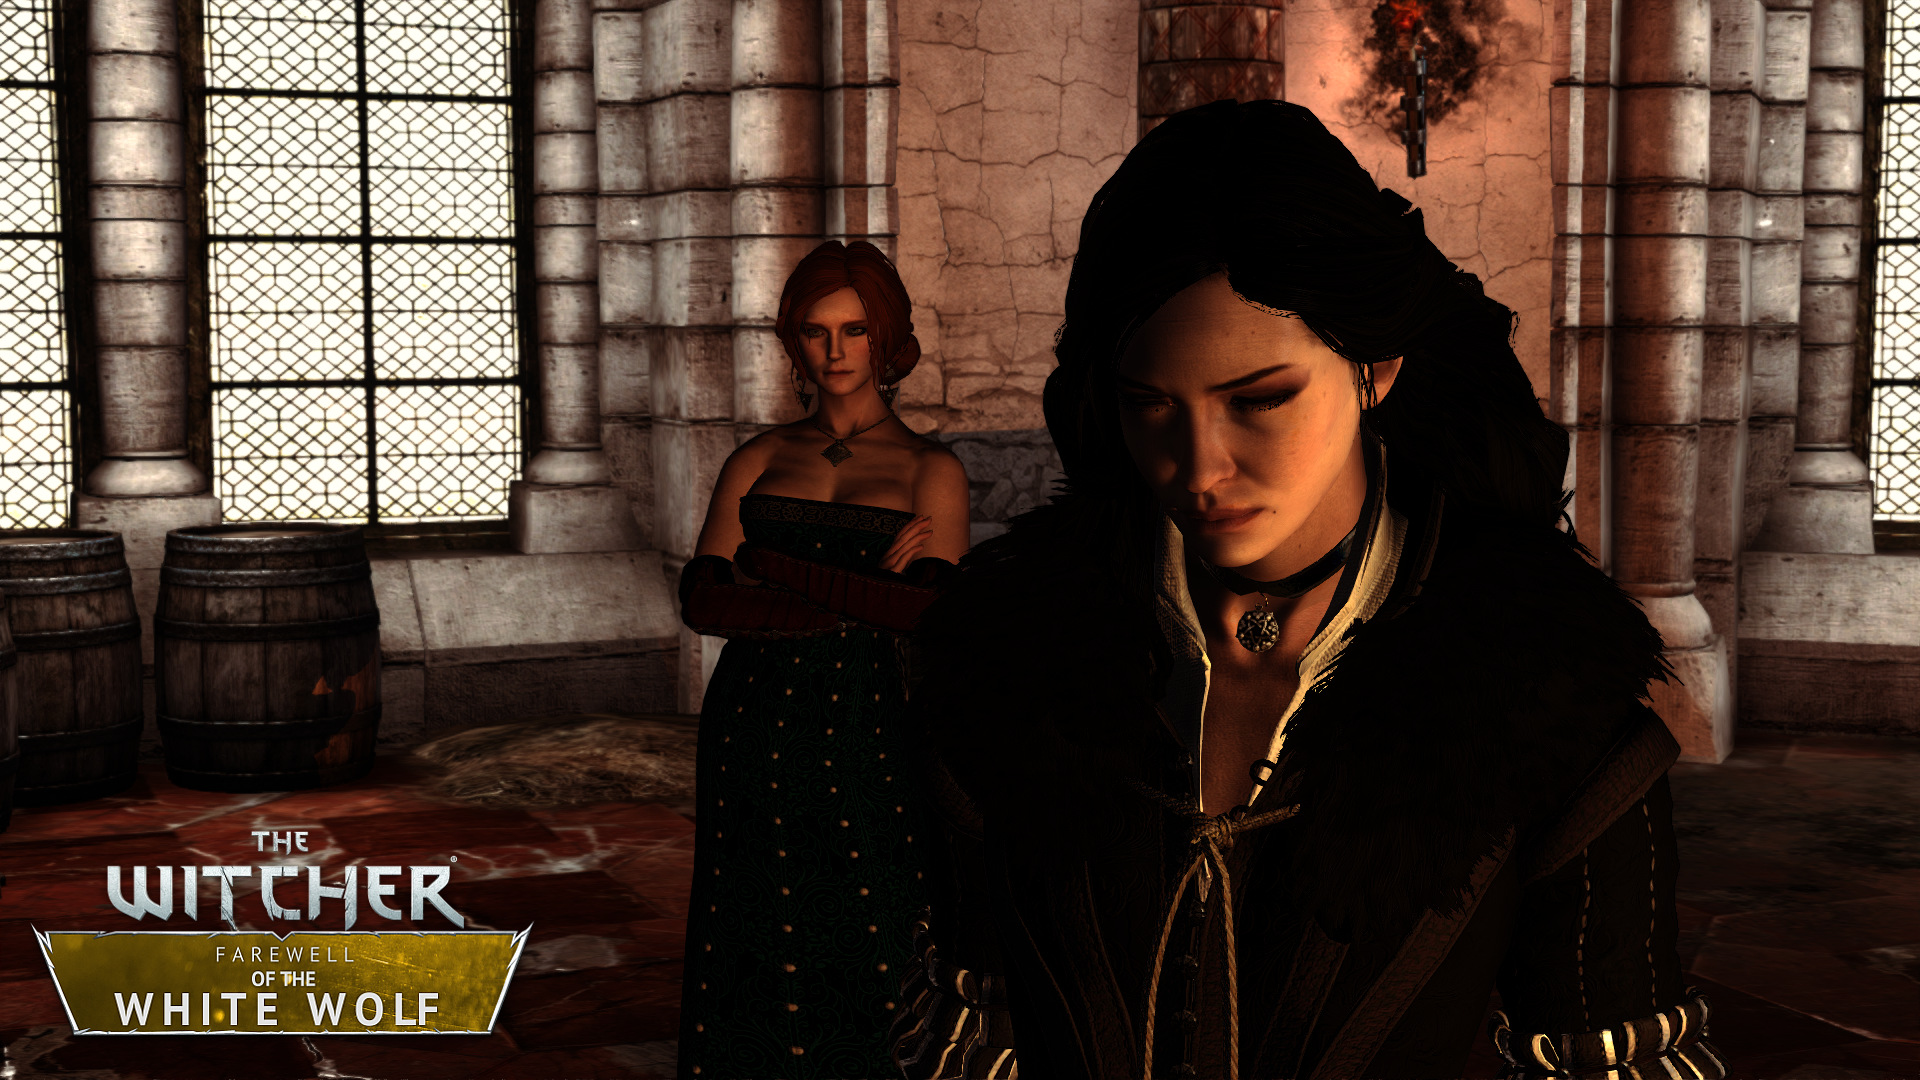 witcher-farewell-of-the-whitewolf-020